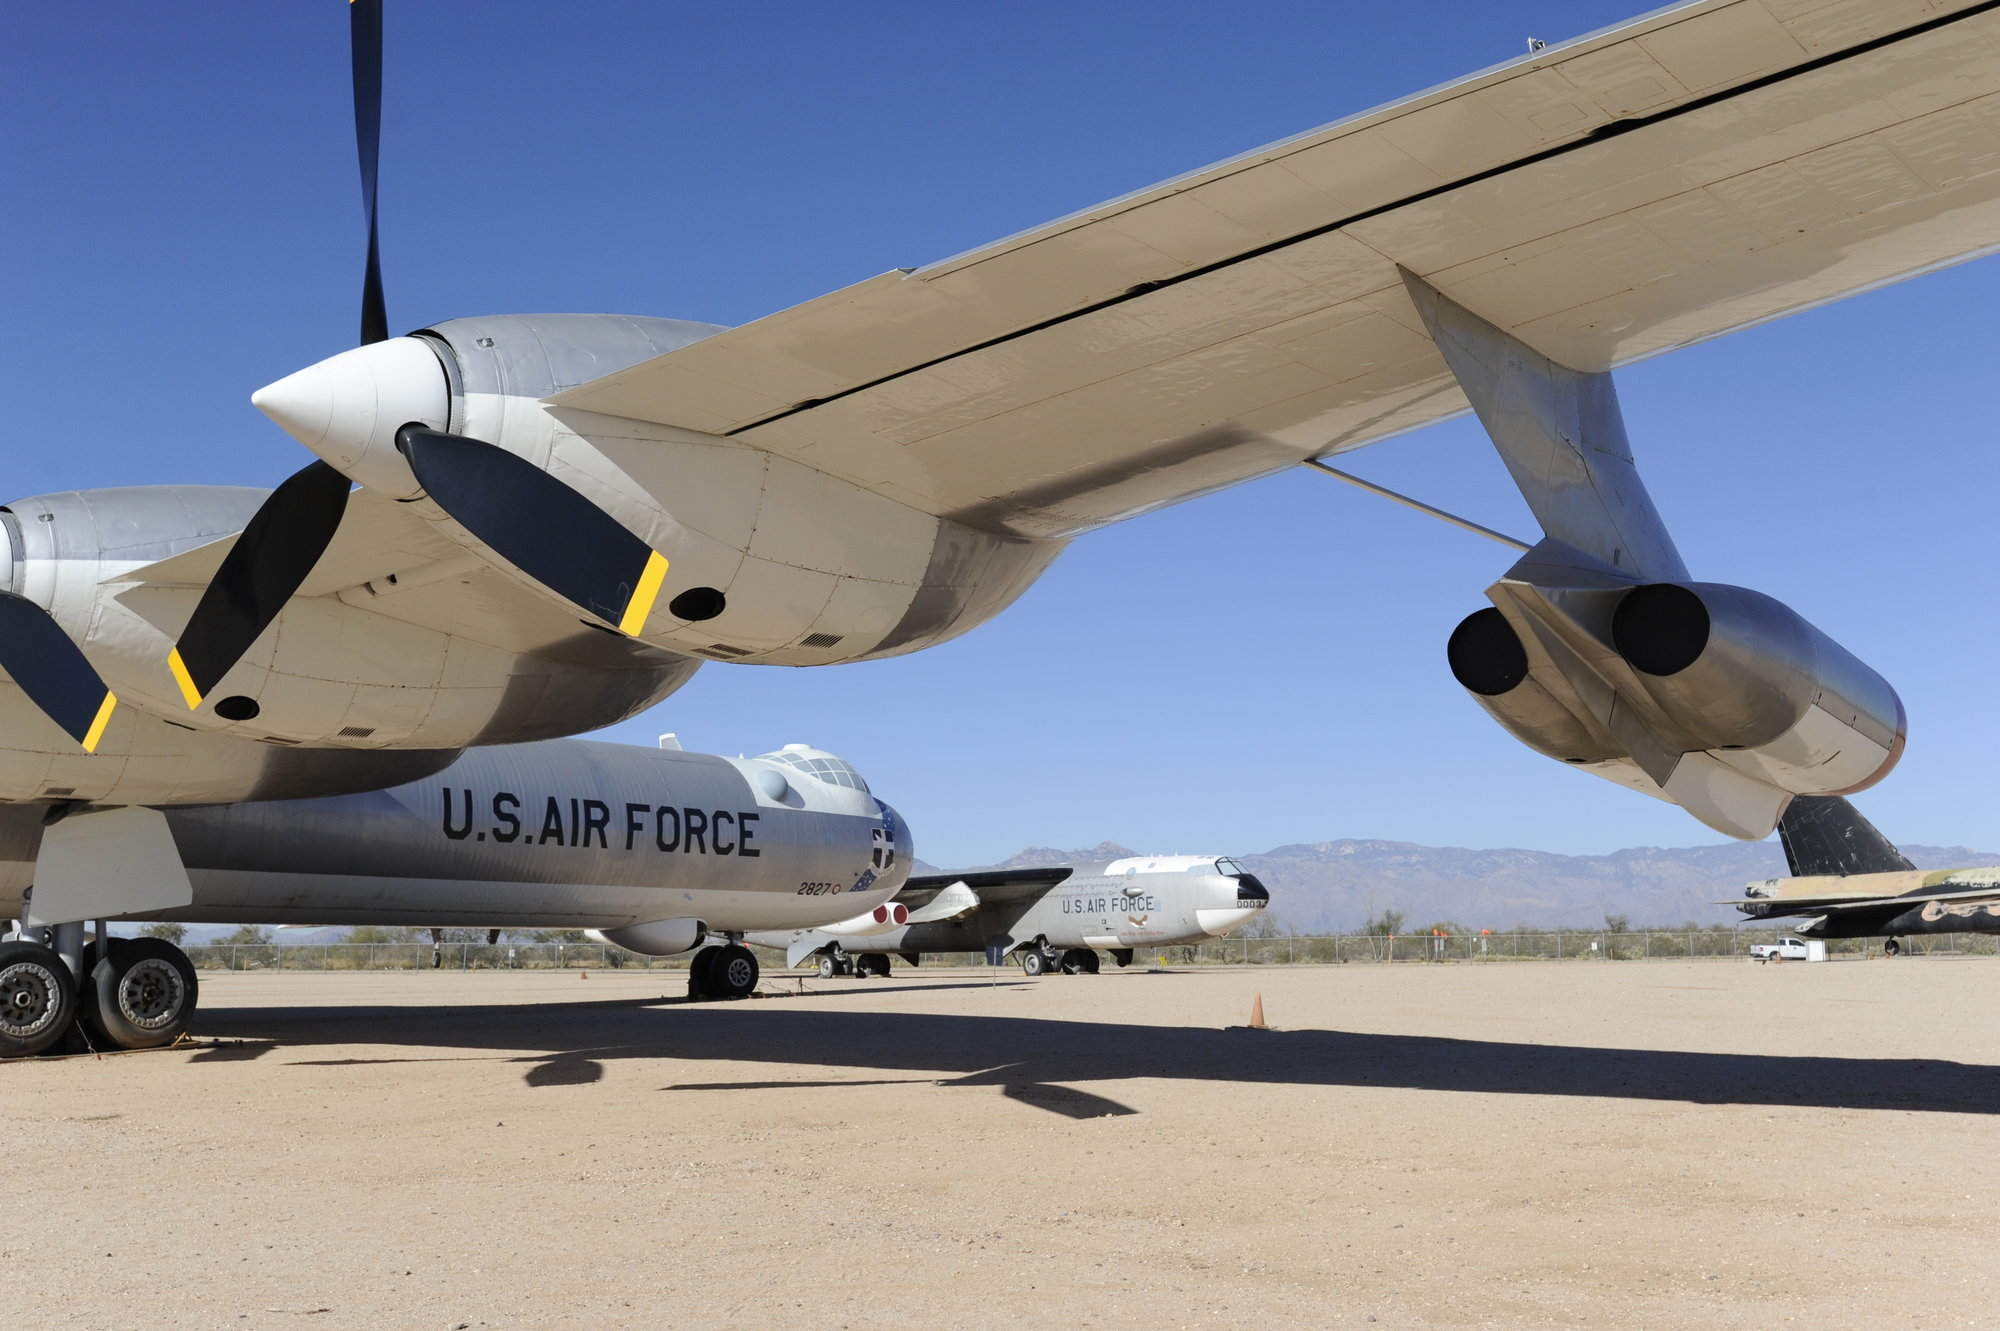 b36 bomber with b52's in the background, Pima Air and Space Museum, Tucson, Arizona